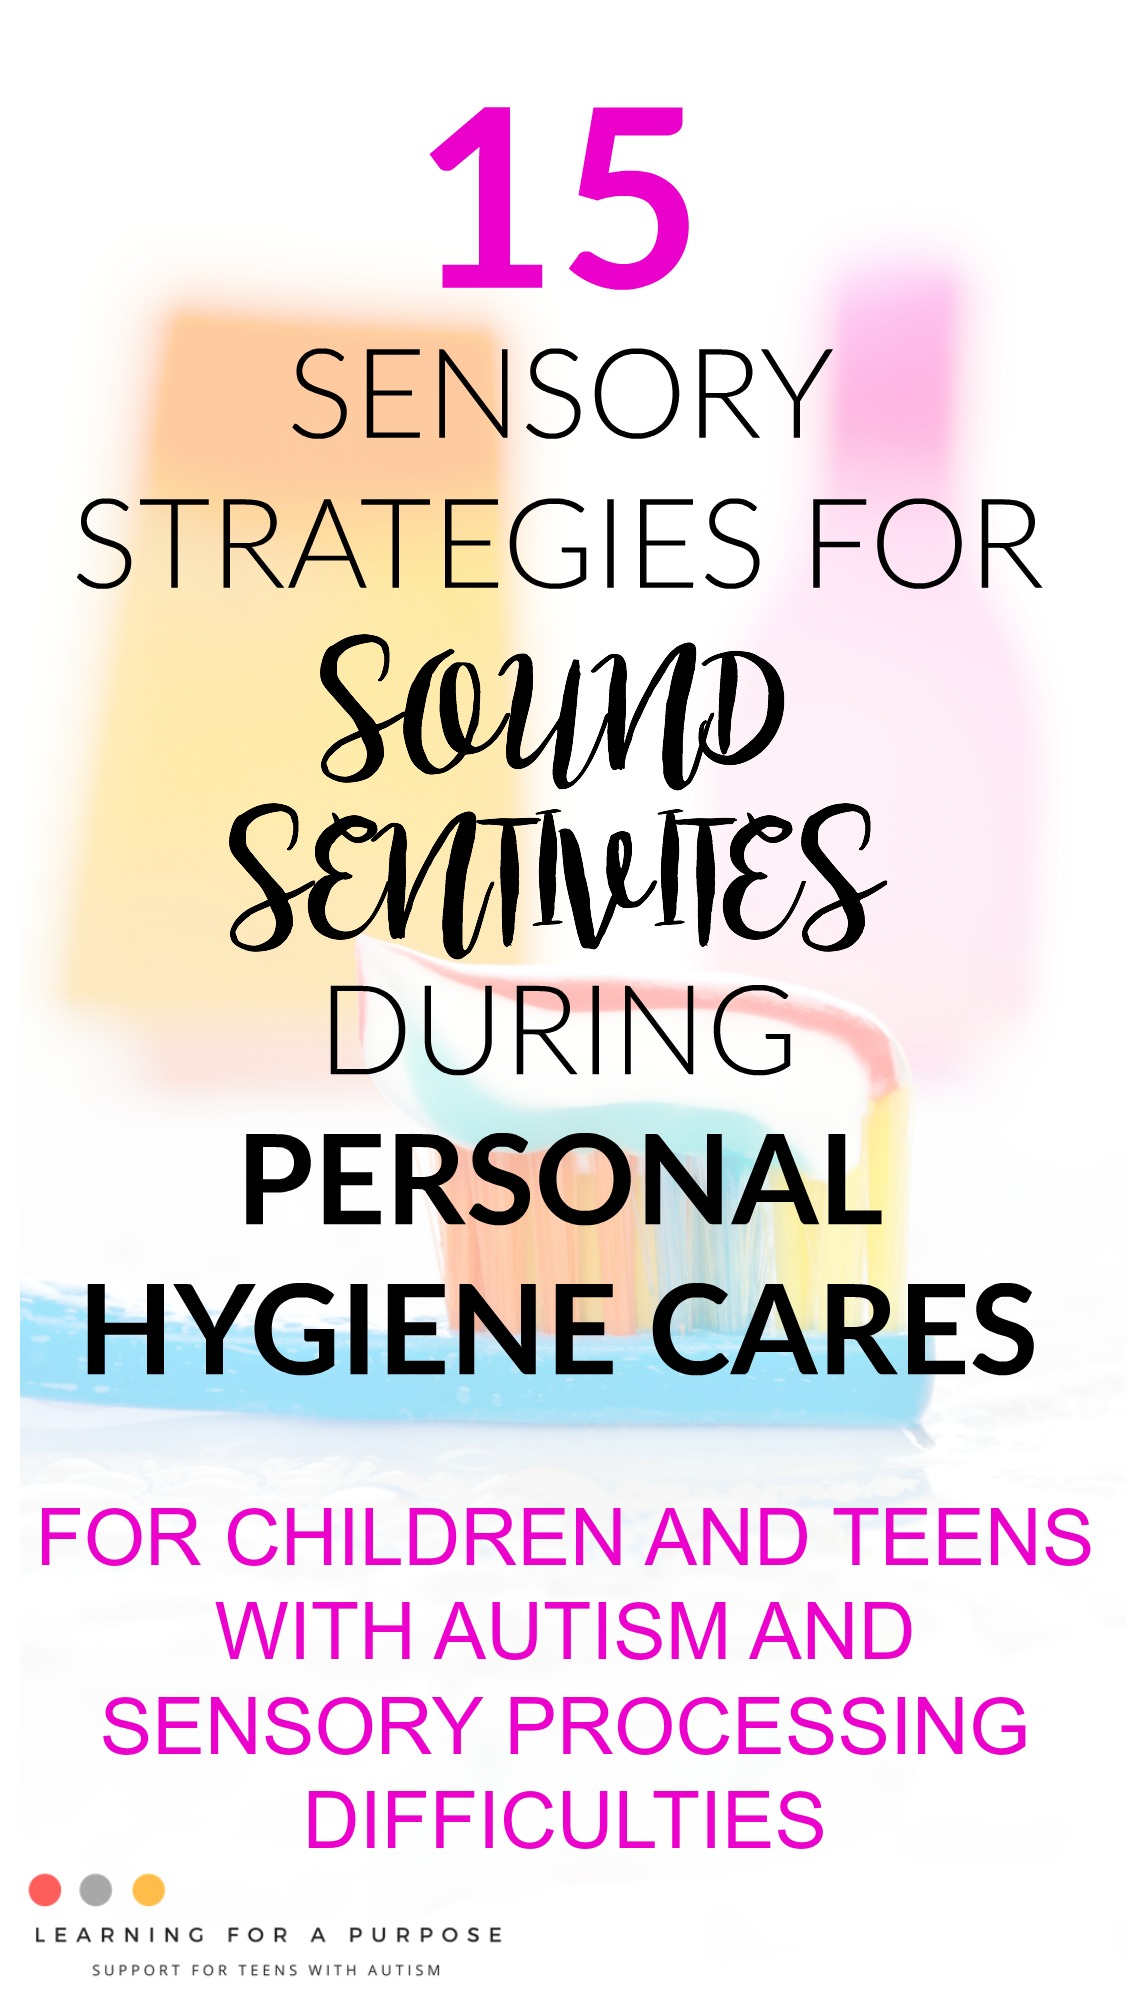 Sound Sensitive during Personal Hygiene Cares #autism #sensory #personalhygiene